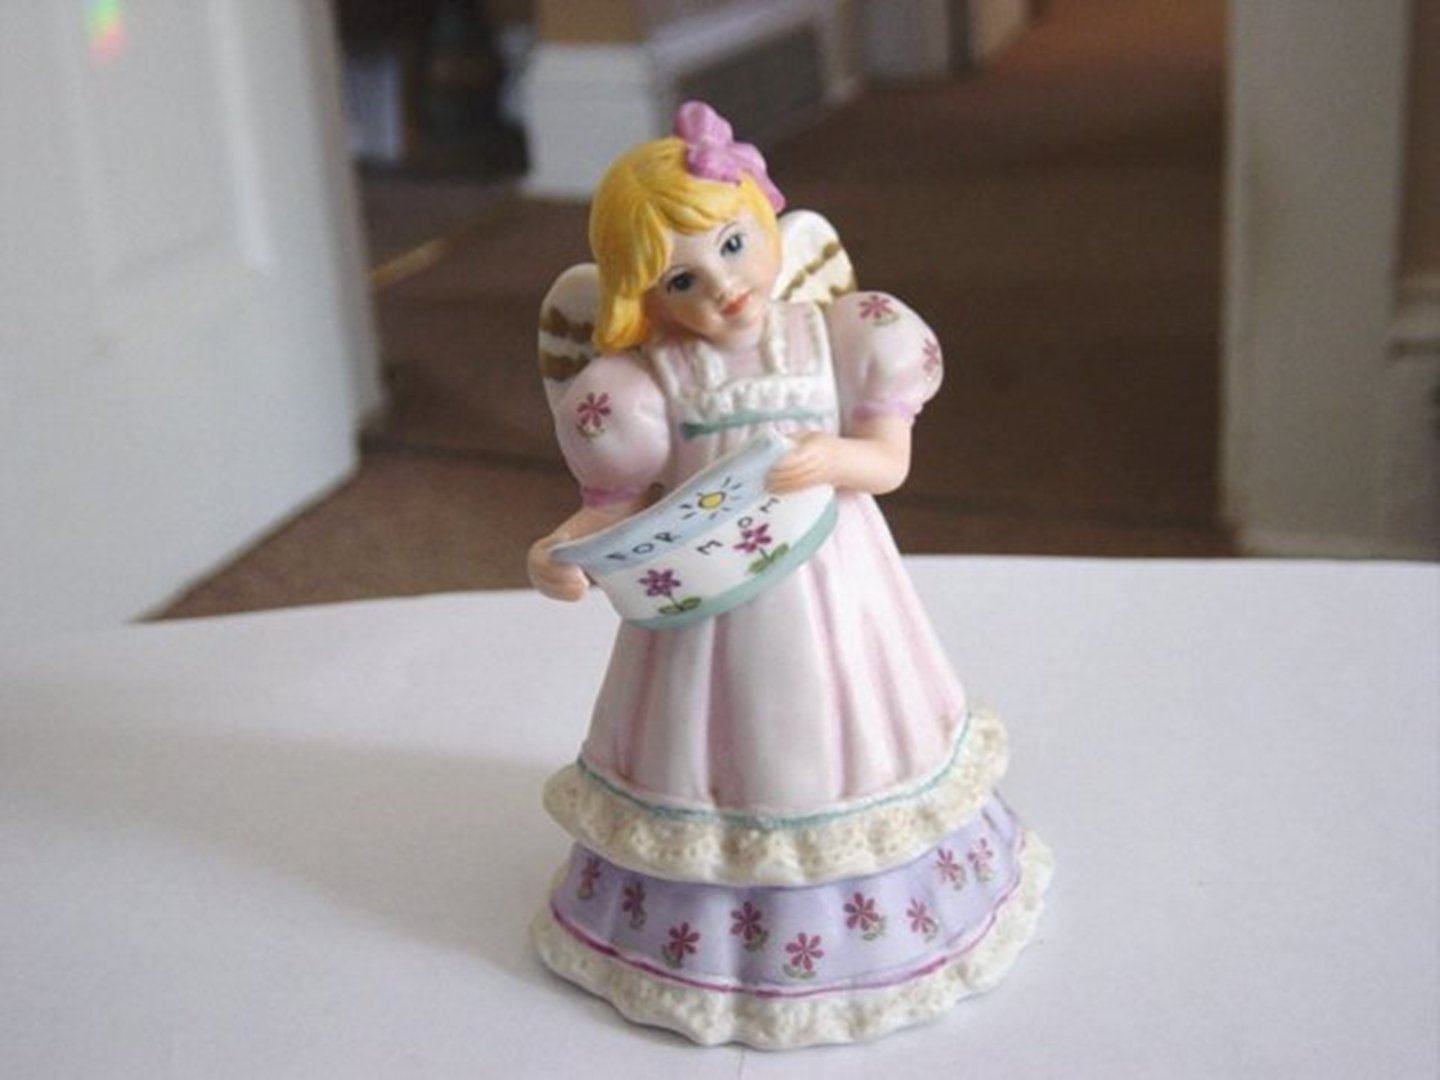 For Mom 1995 Schmid Angel Memories Little Girl Angel Music Box Plays Wind Beneath My Wings #400037